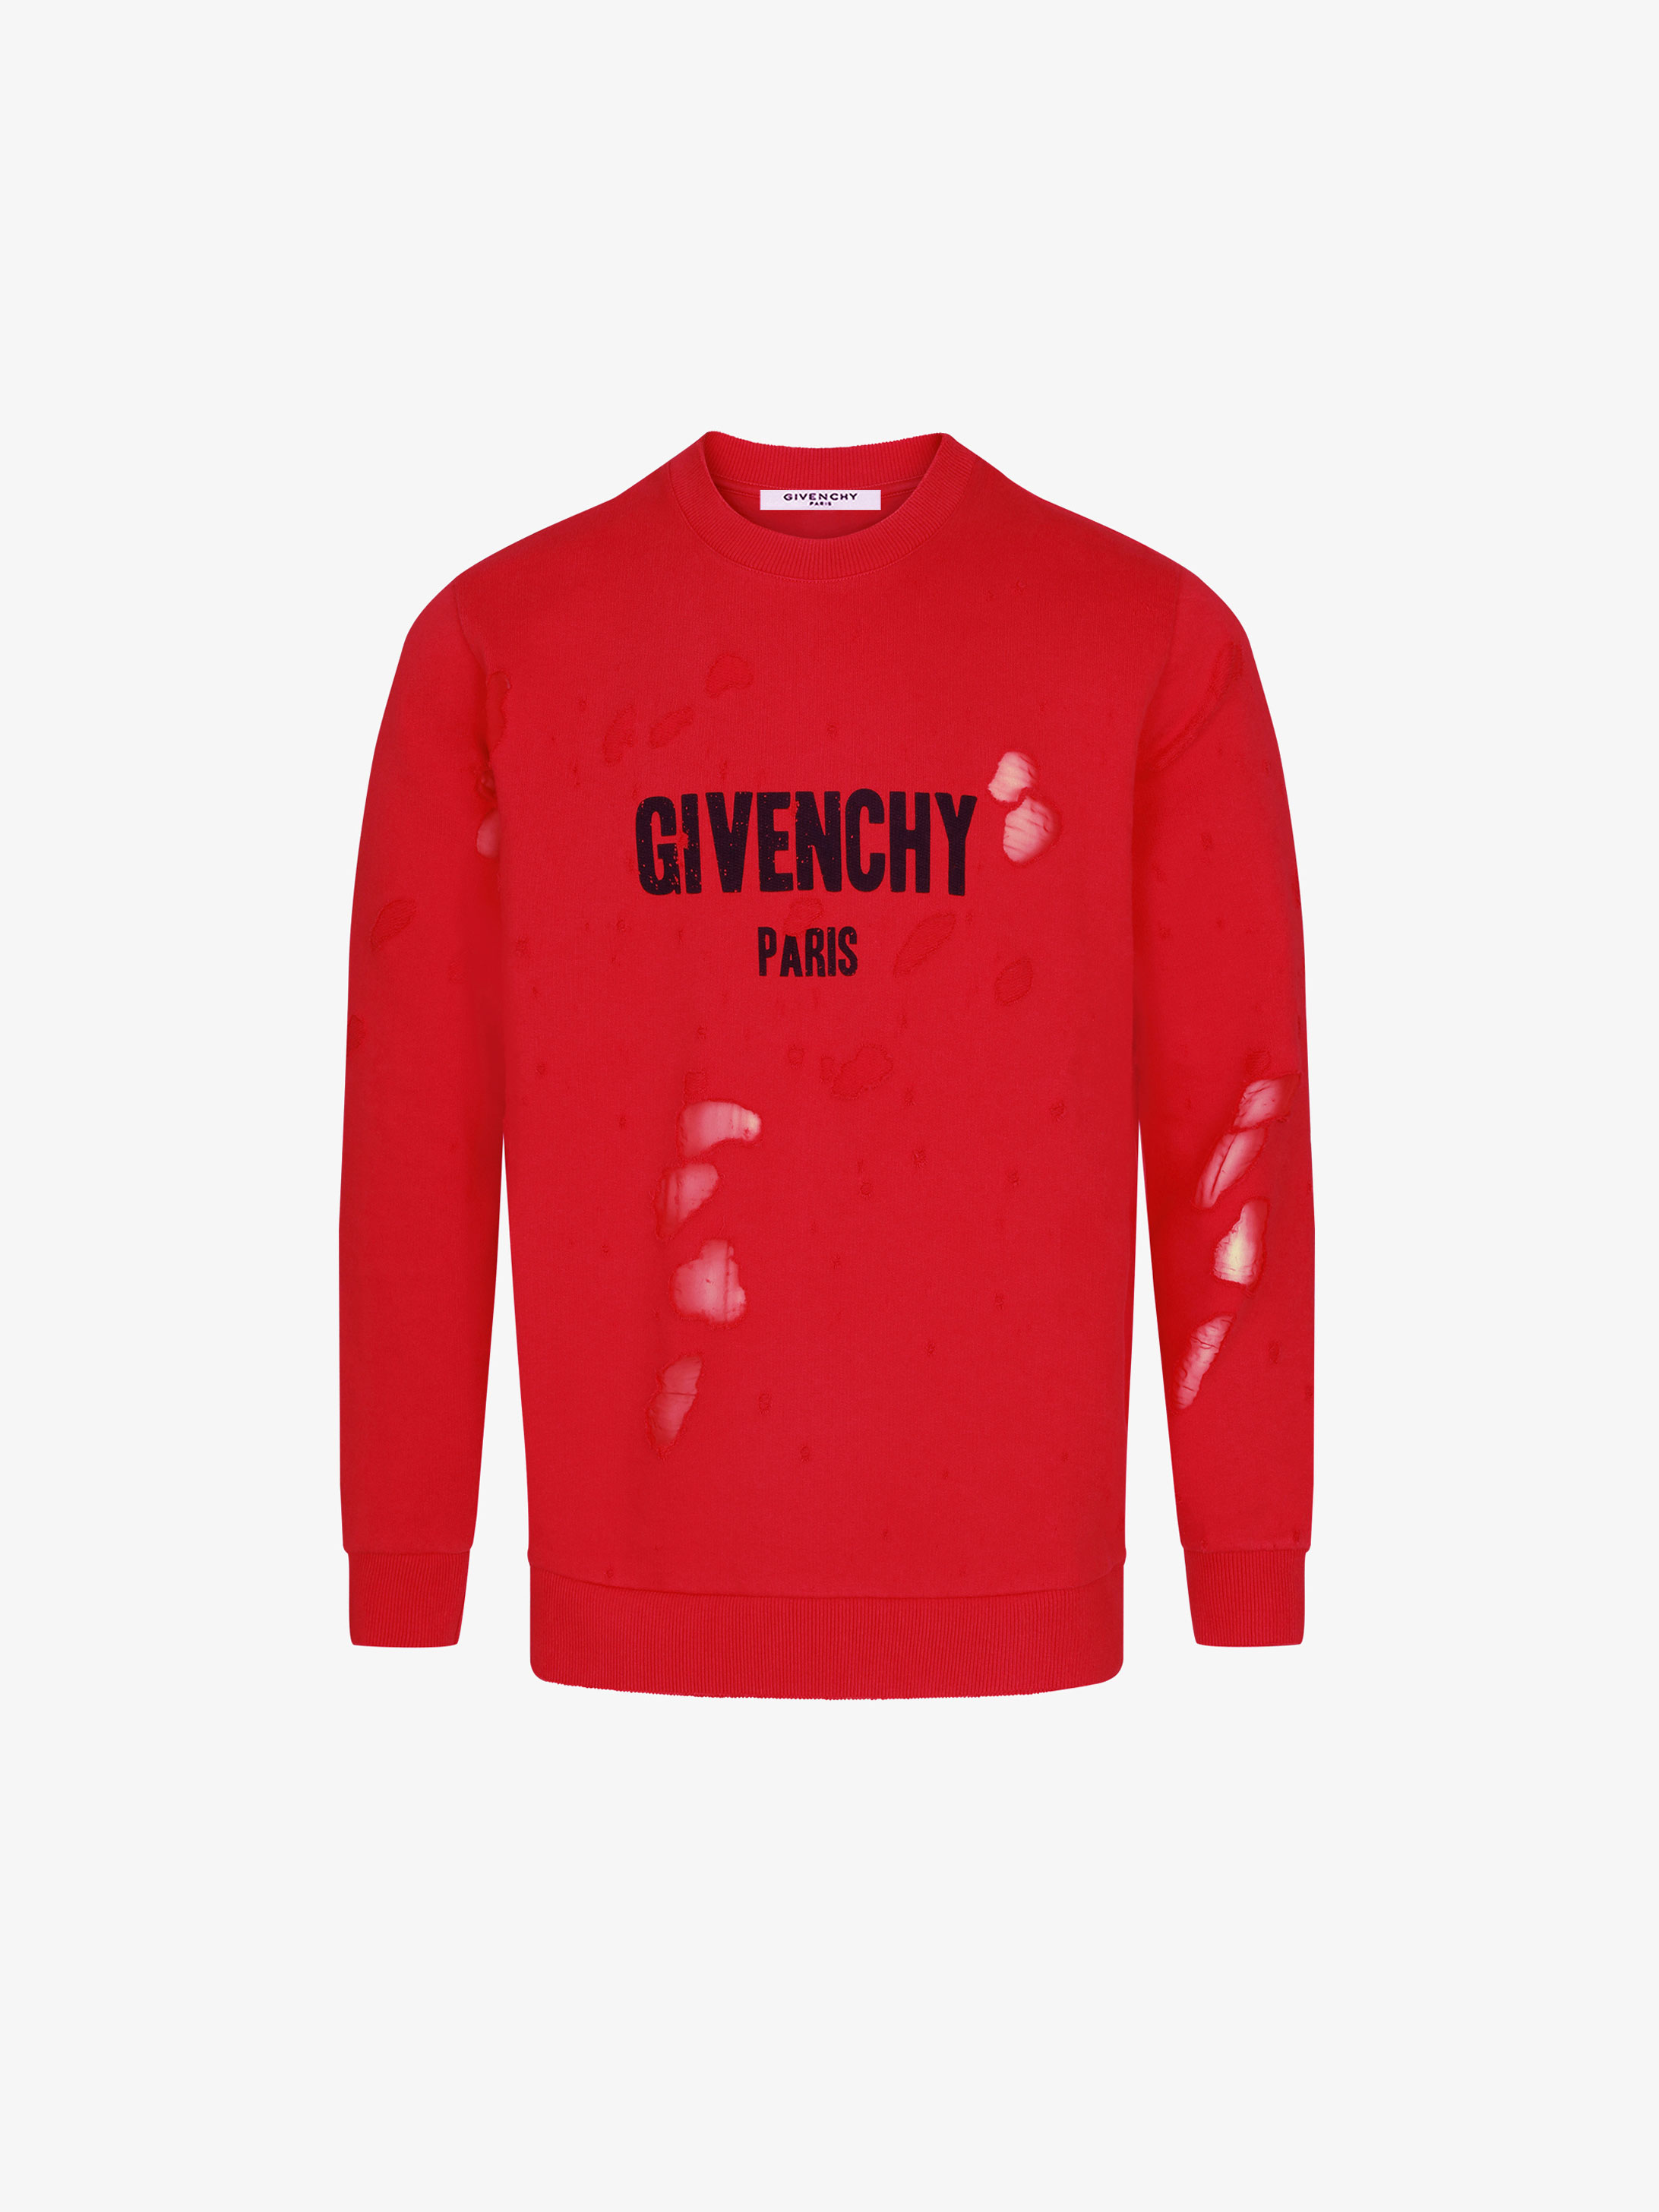 Sweatshirt GIVENCHY PARIS destroyed